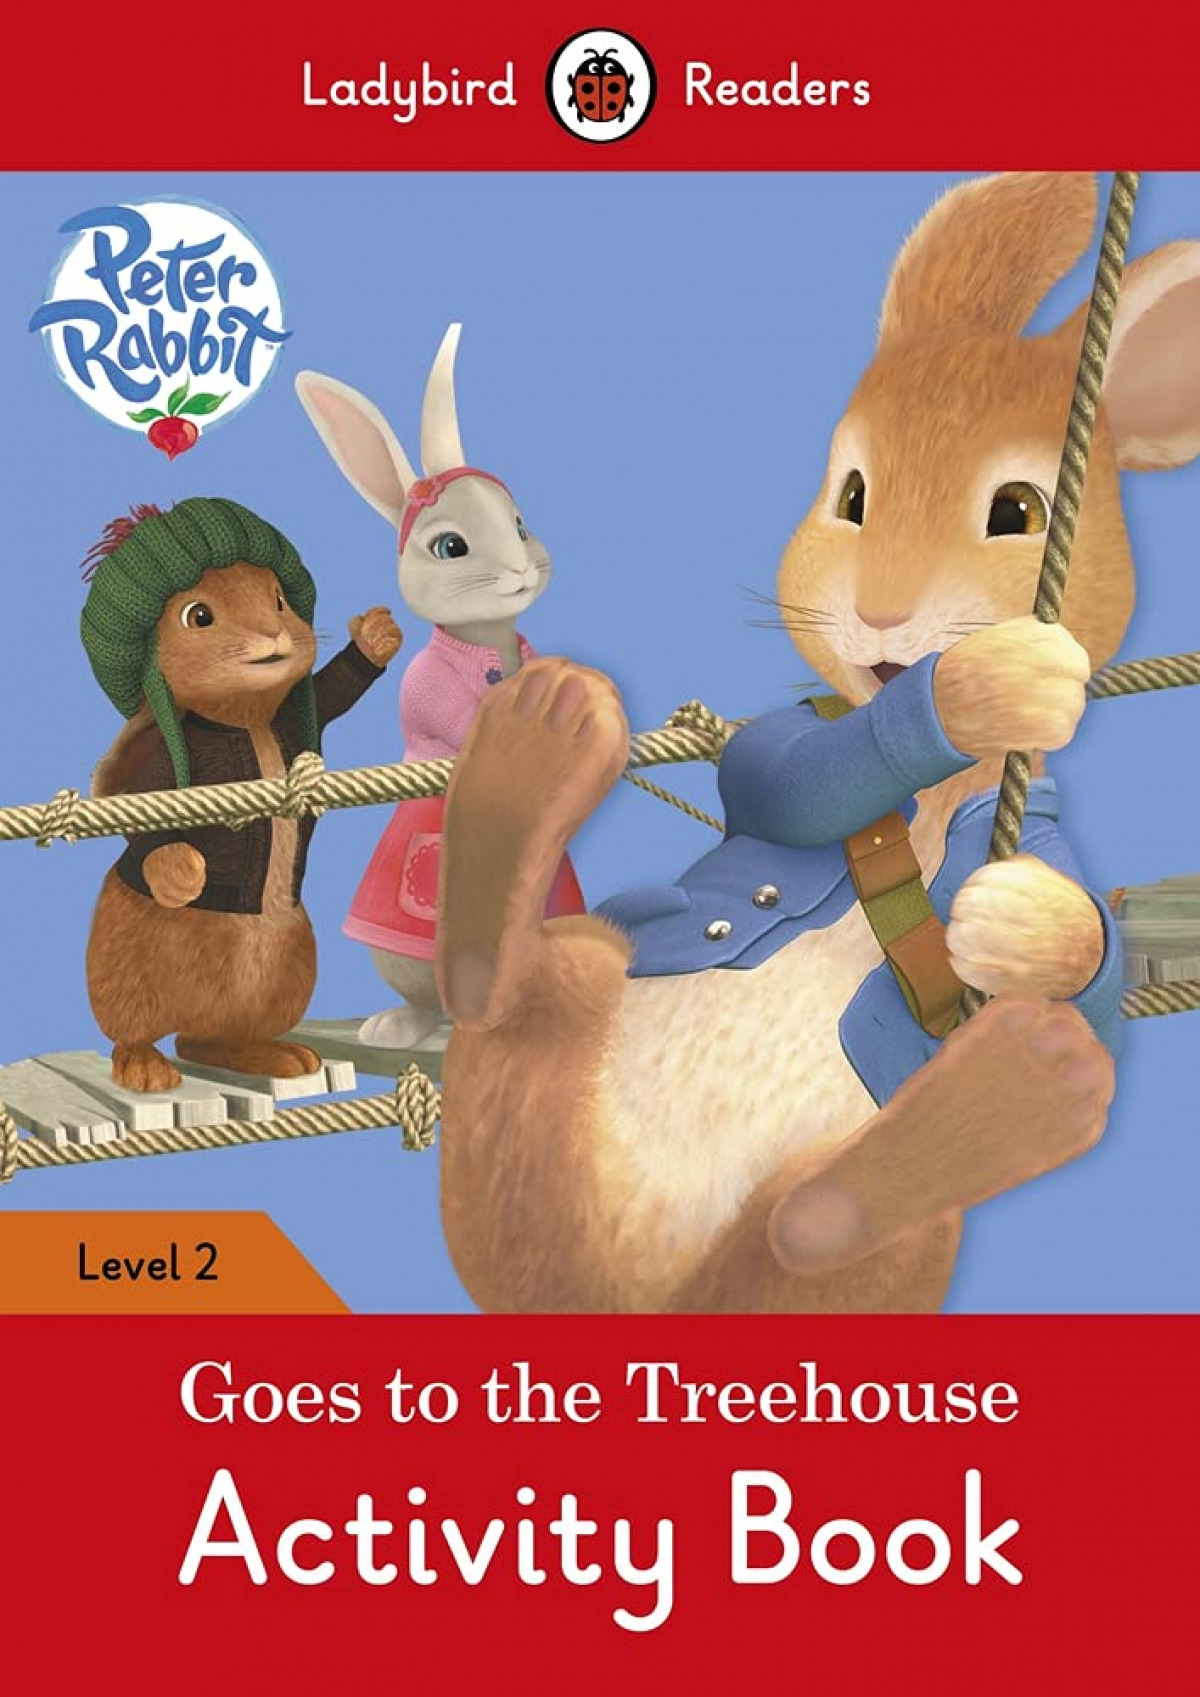 GOES THE TREEHOUSE. PETER RABBIT. ACTIVITY BOOK